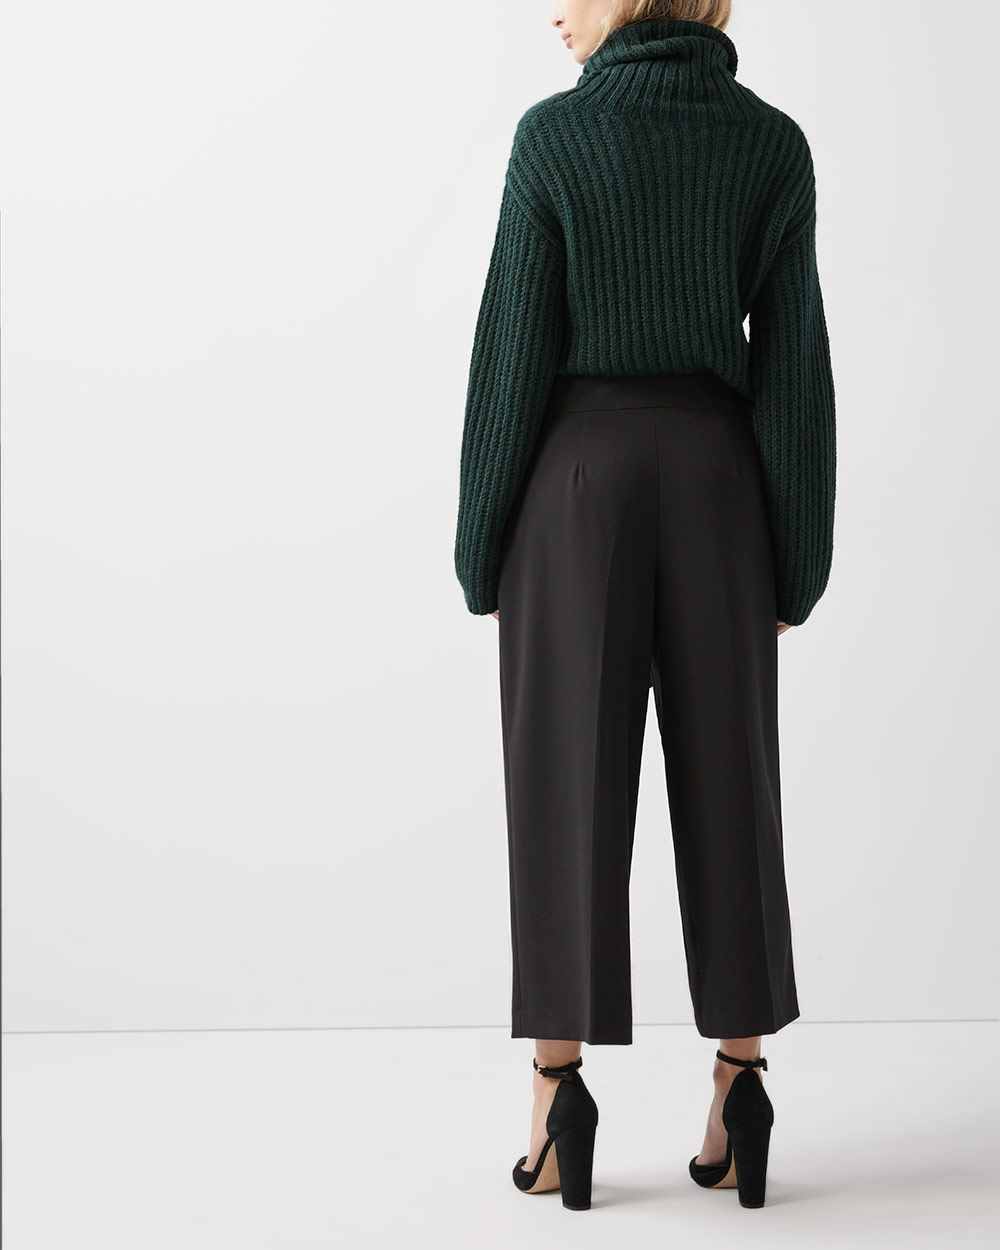 Wide crop leg pant with sash